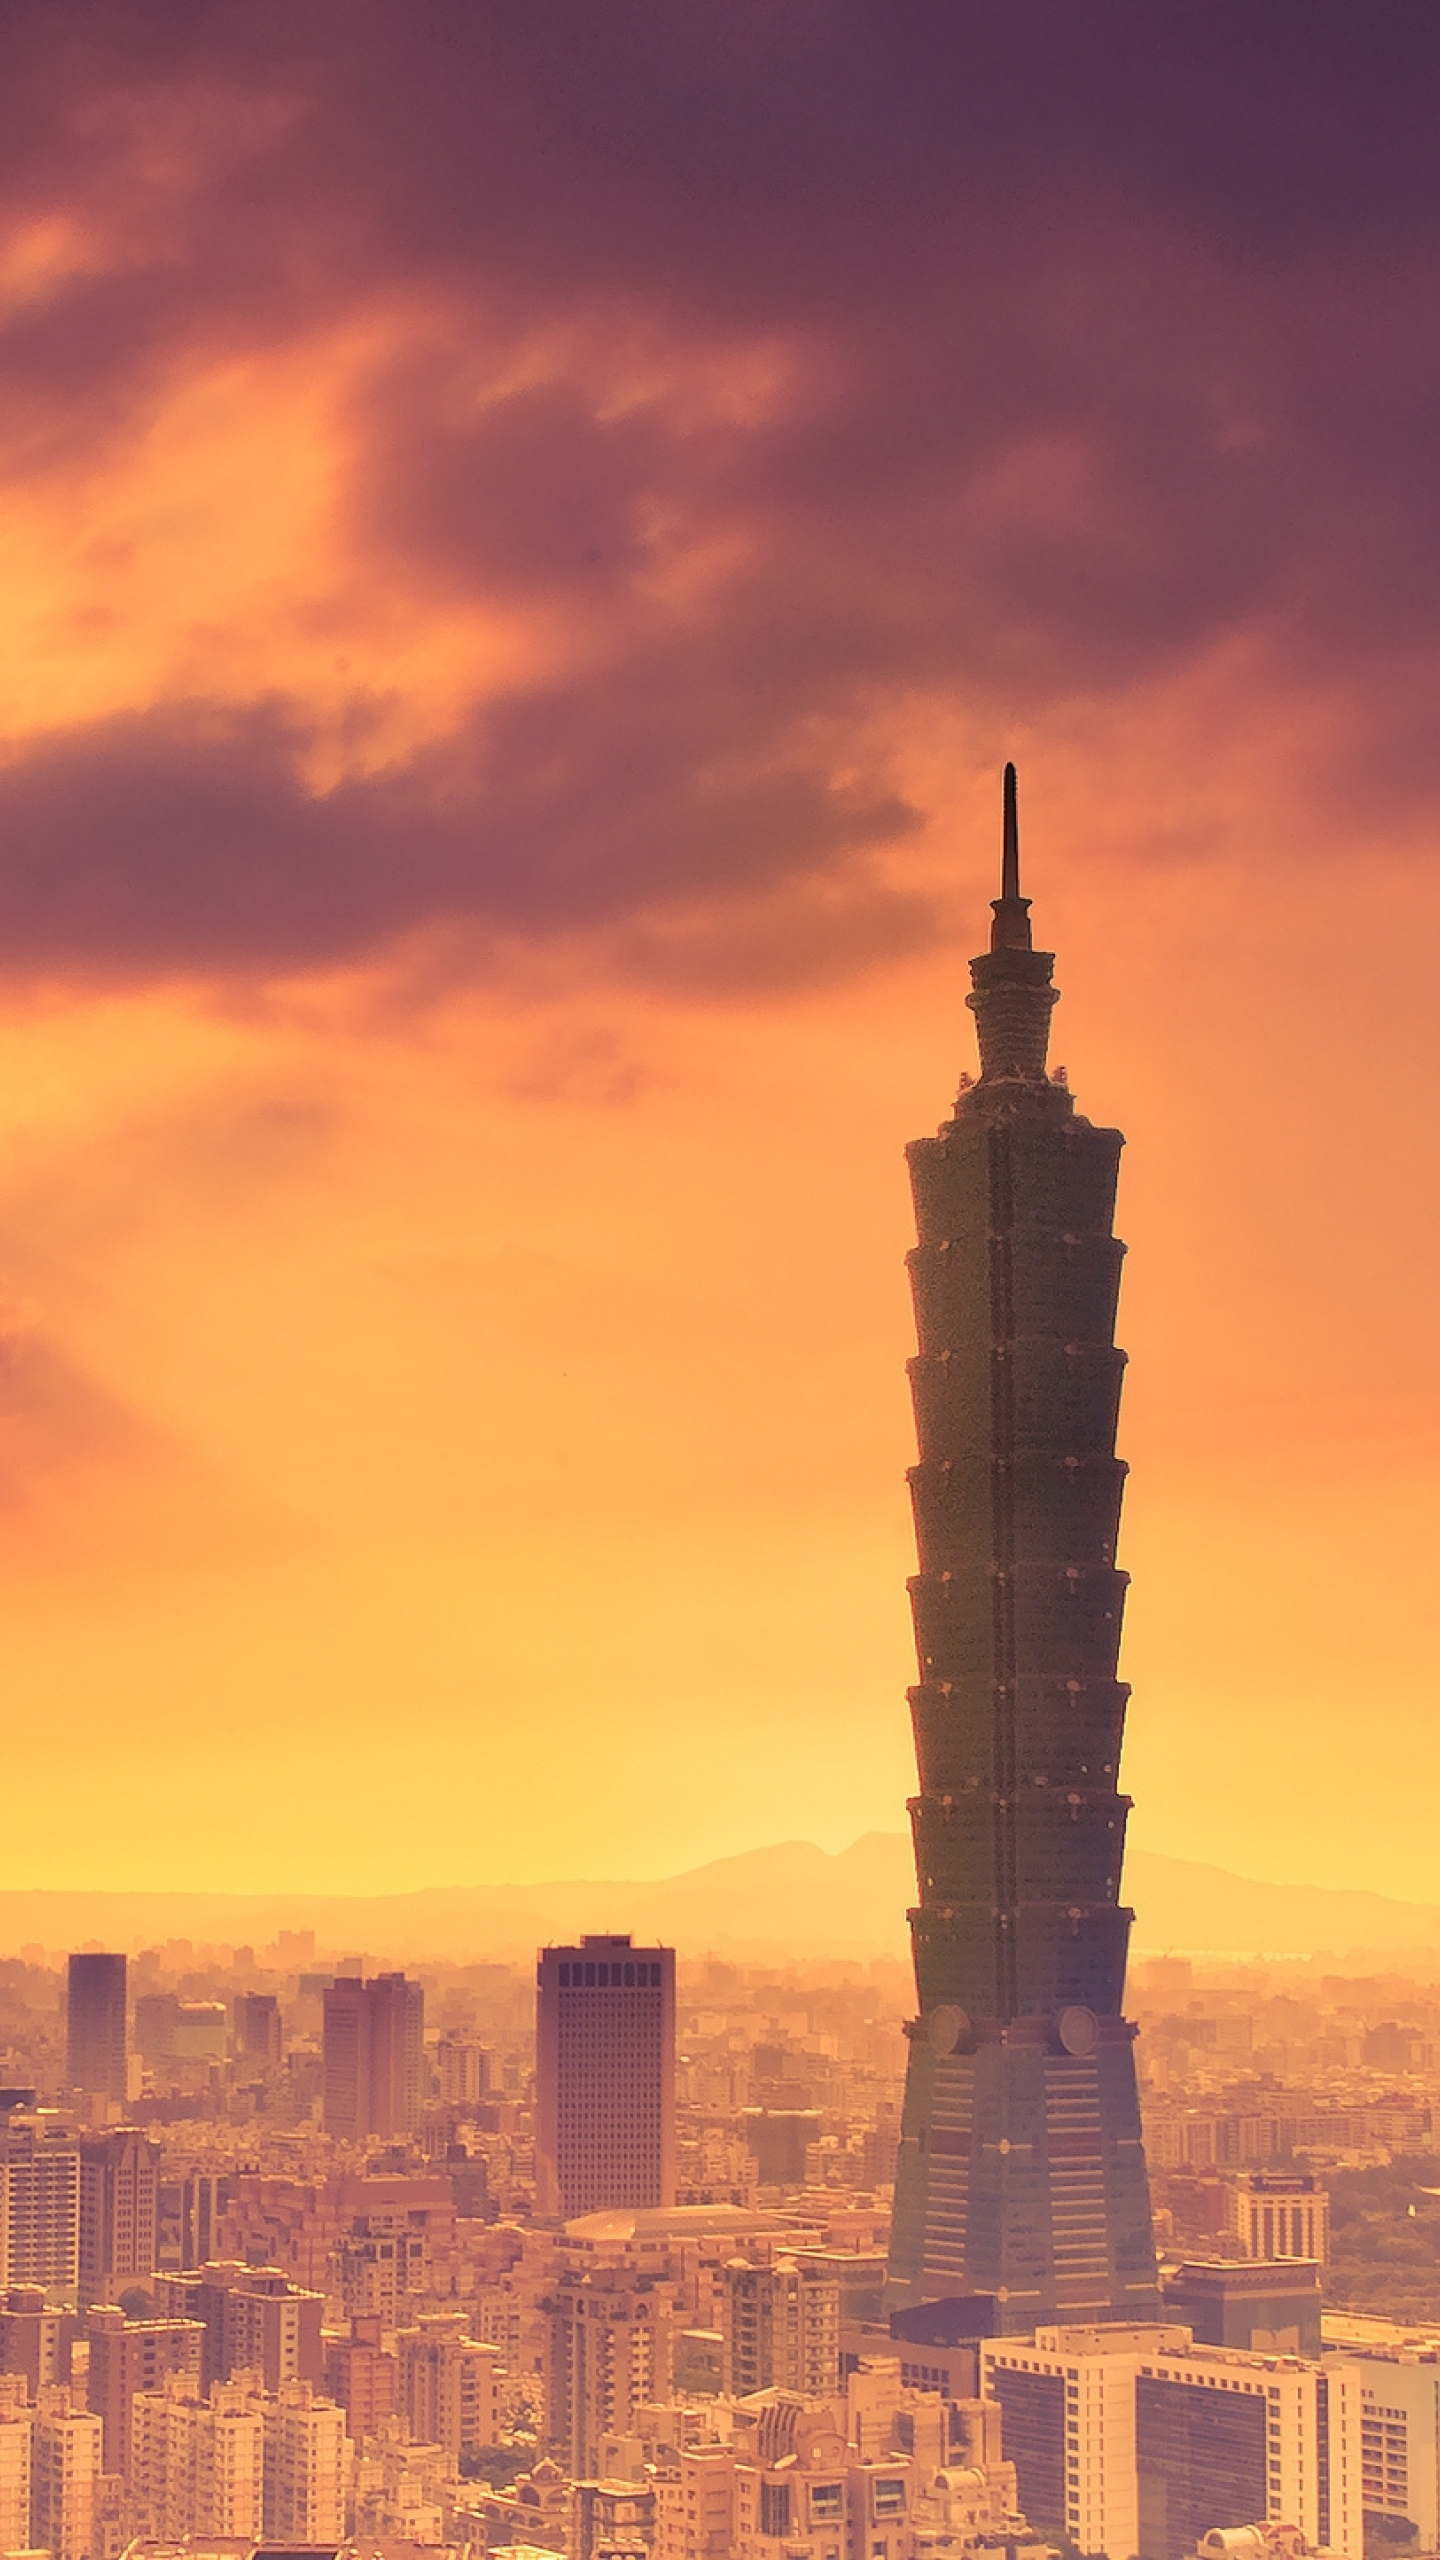 Download Tower, Building, Taipei 7680x4320 Resolution